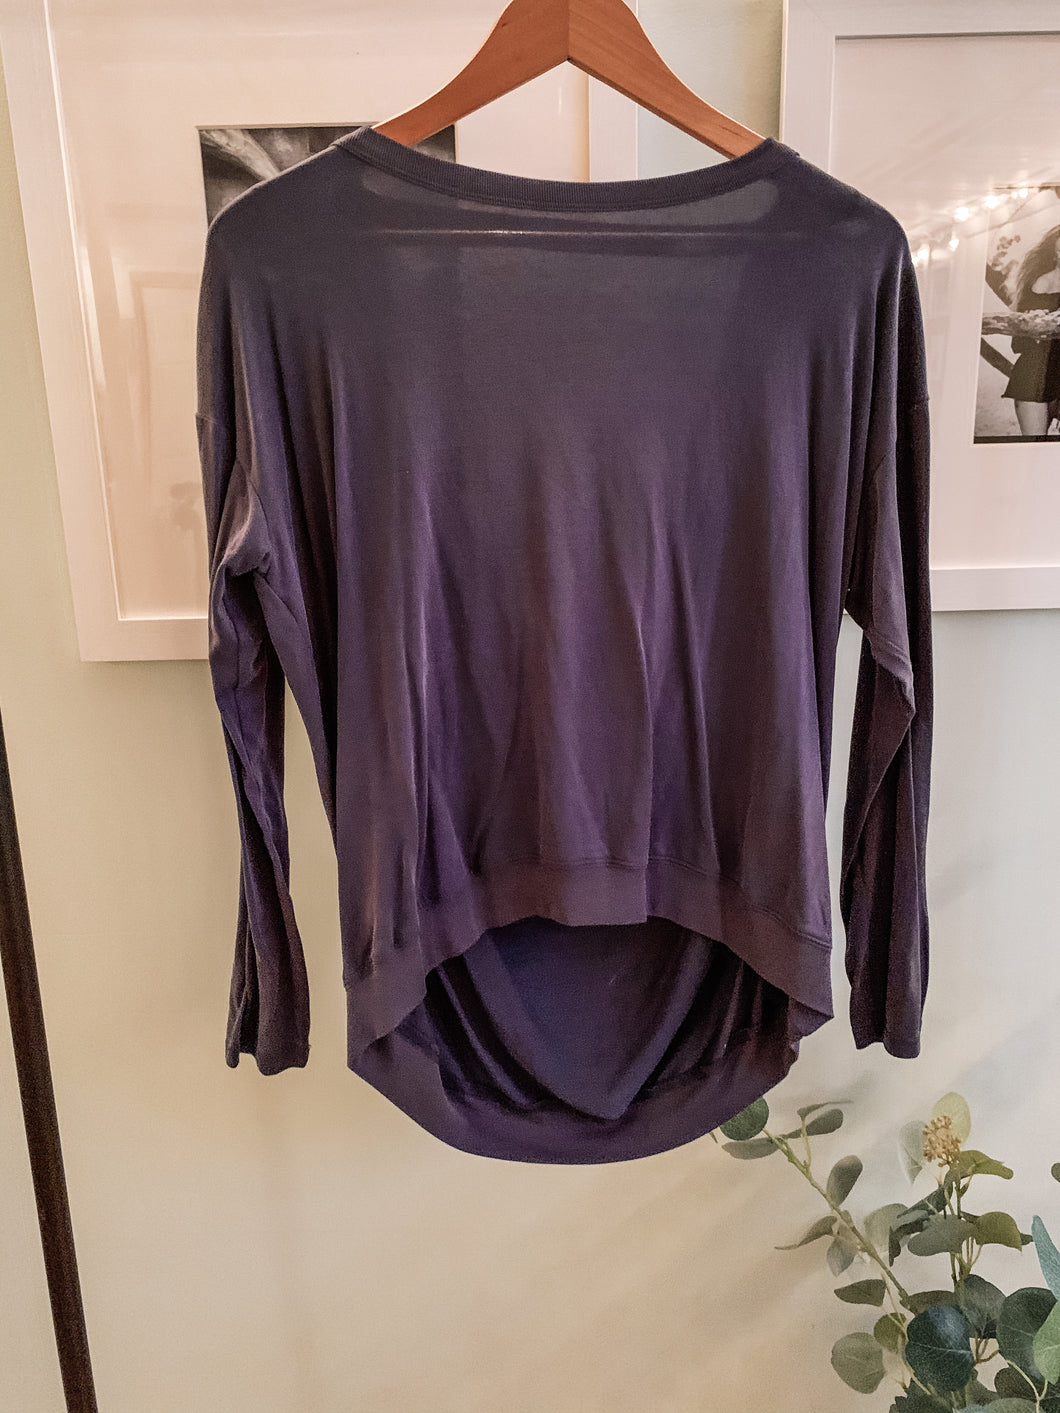 Trendy Boutique active wear shirt. Wear to the gym or with jeans and heals...